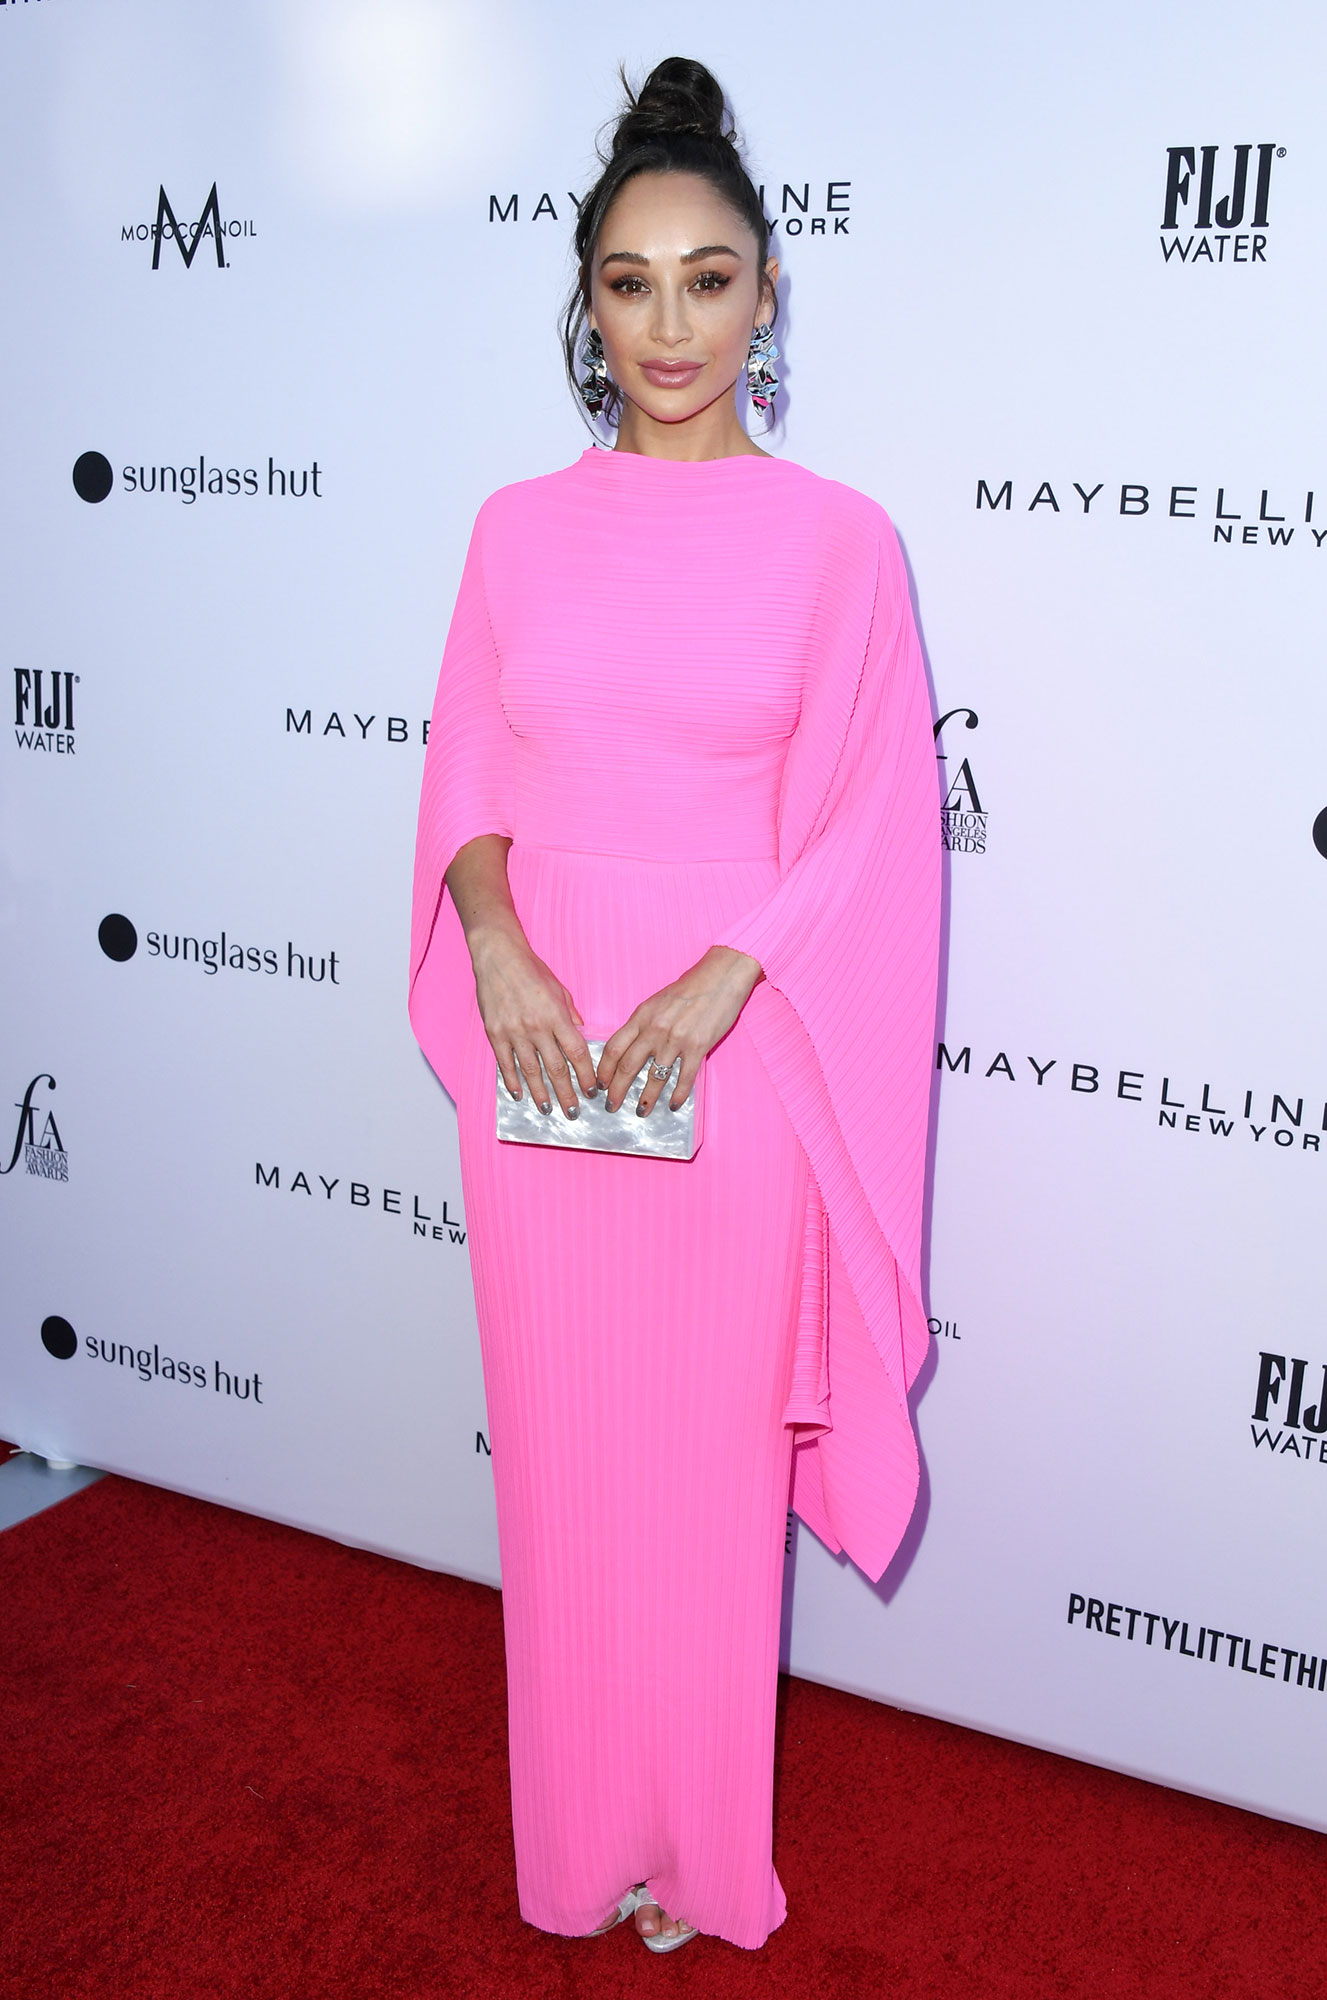 Stars Brought Their Style A-Game to the Daily Front Row Fashion Awards - The actress stunned in a bubble gum pink dress with draped sleeves and a messy topknot.